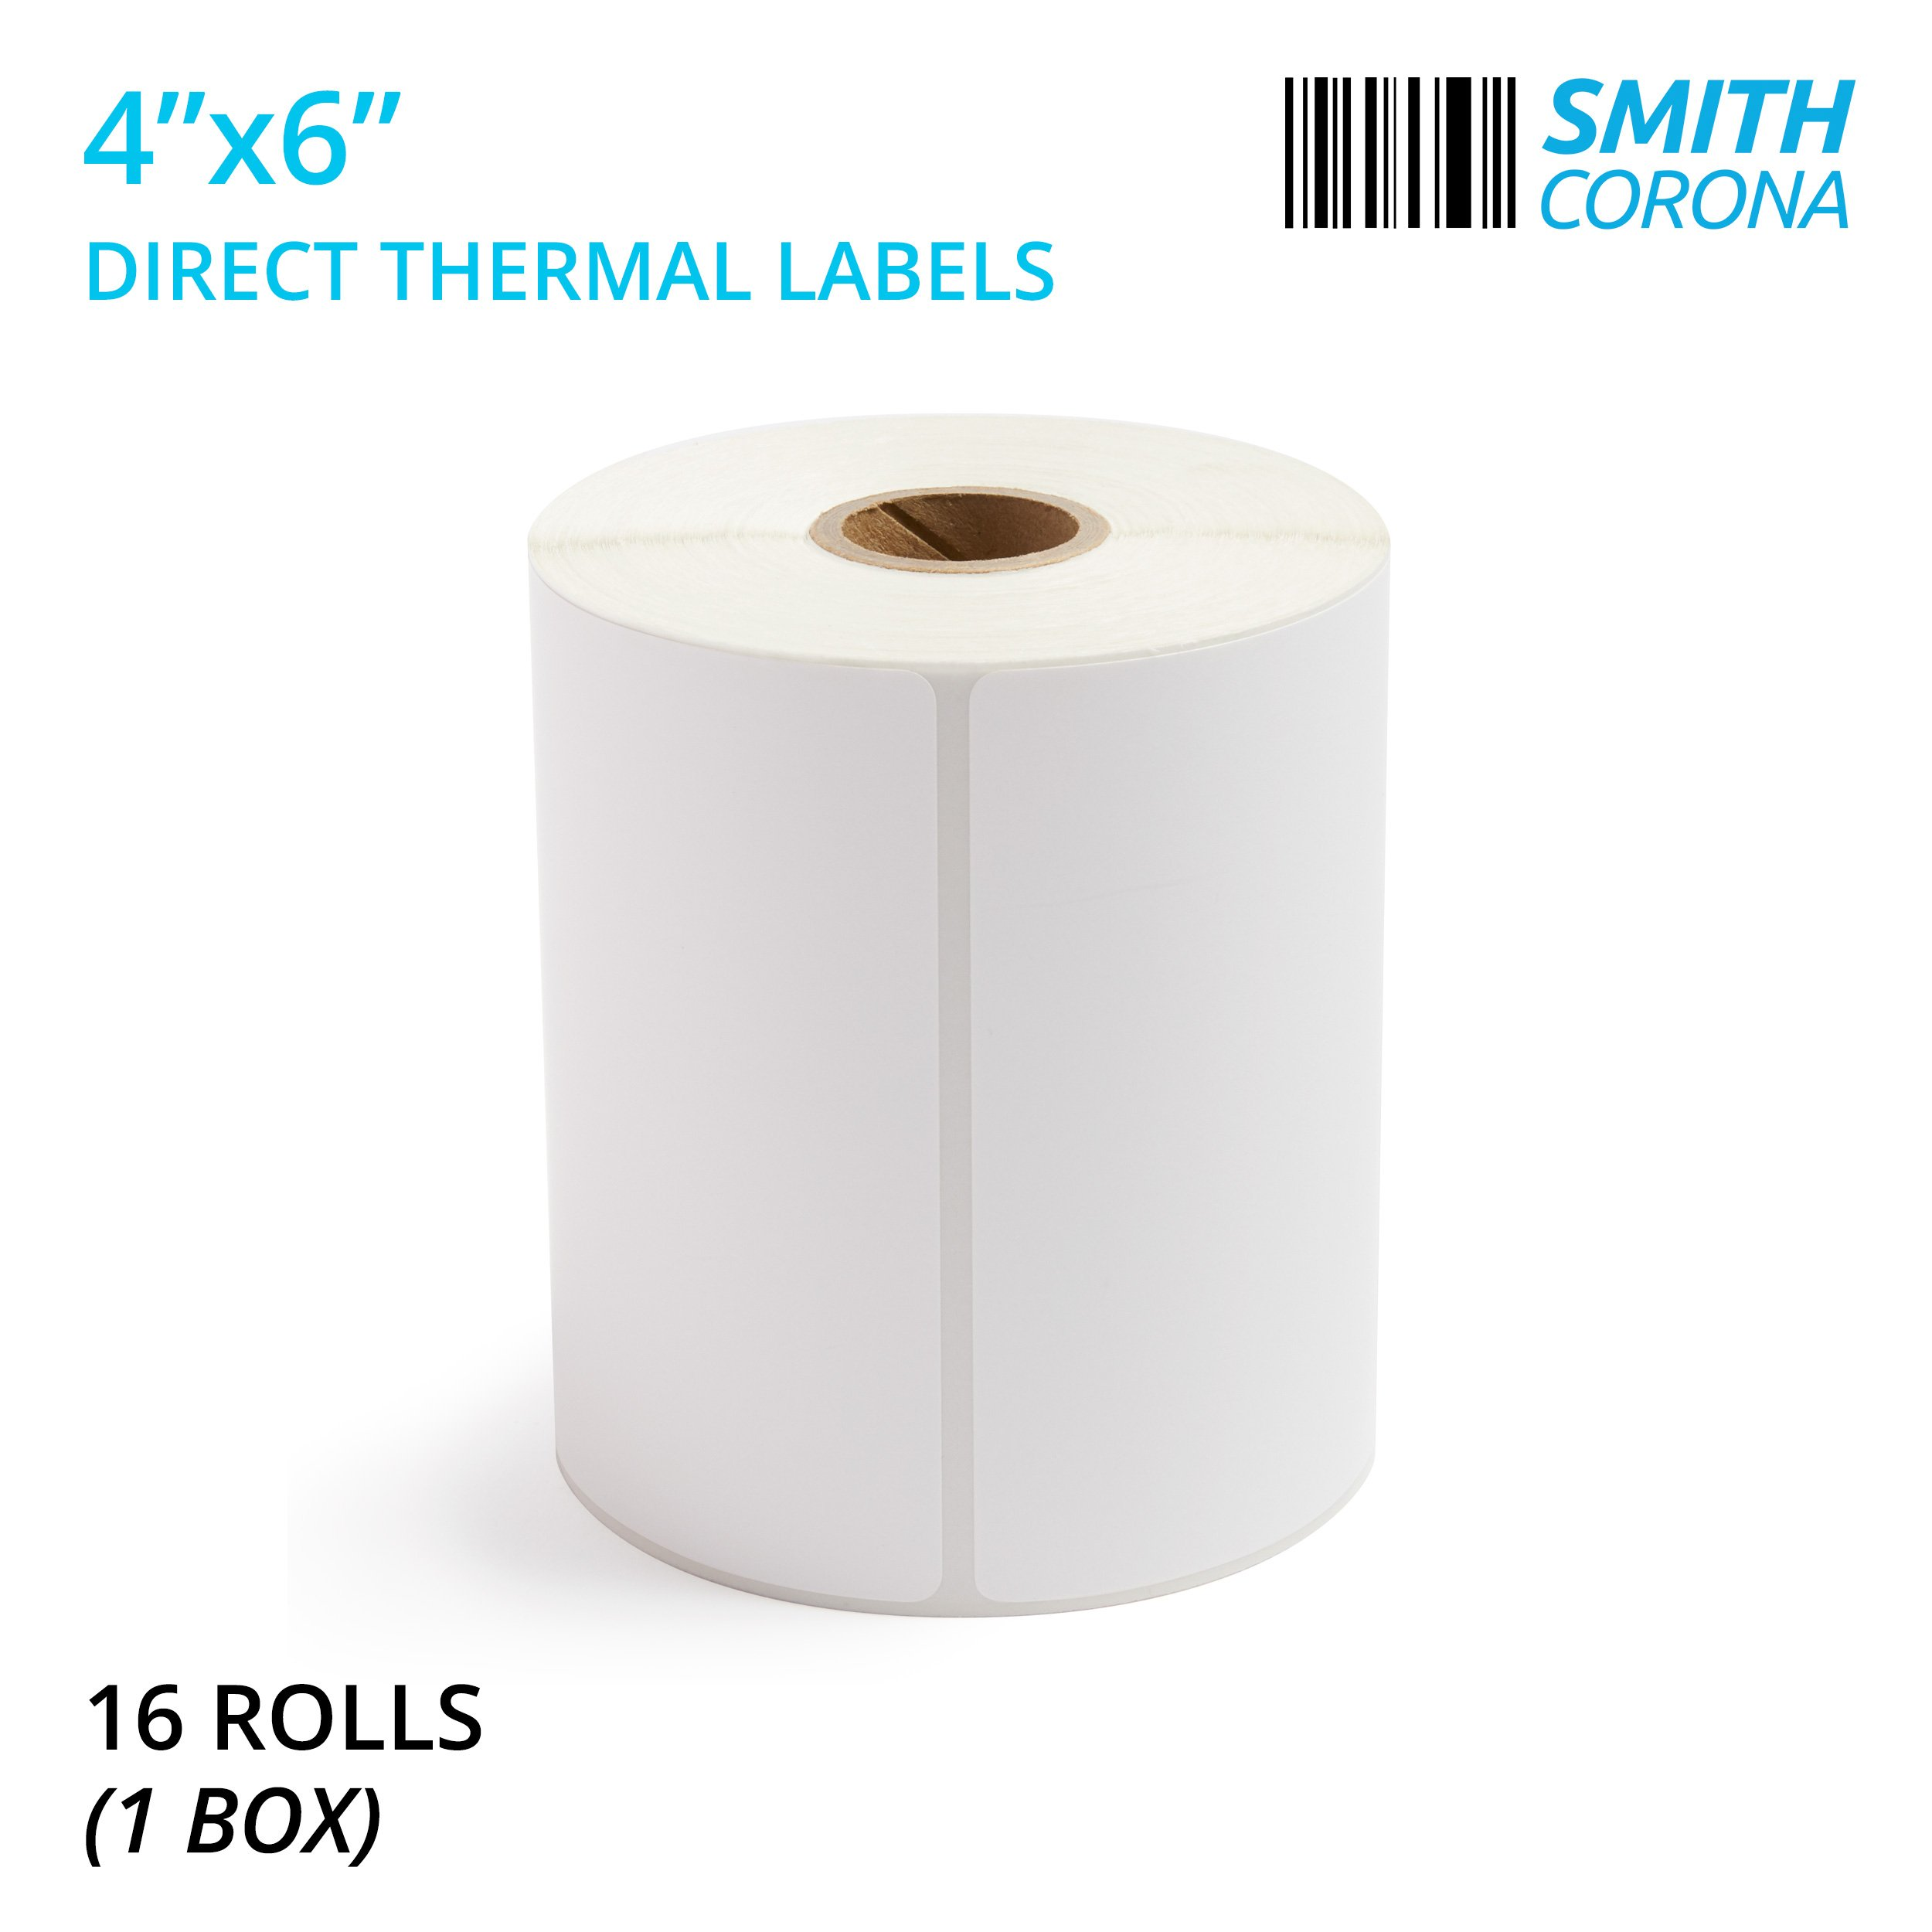 Smith Corona - 4x6 Direct Thermal Labels, 16 Rolls with 250 Labels/Roll, 1'' Core, 4000 Labels Total, Made in The USA, for 1'' Core Printers (16 Rolls) - Zebra Compatible